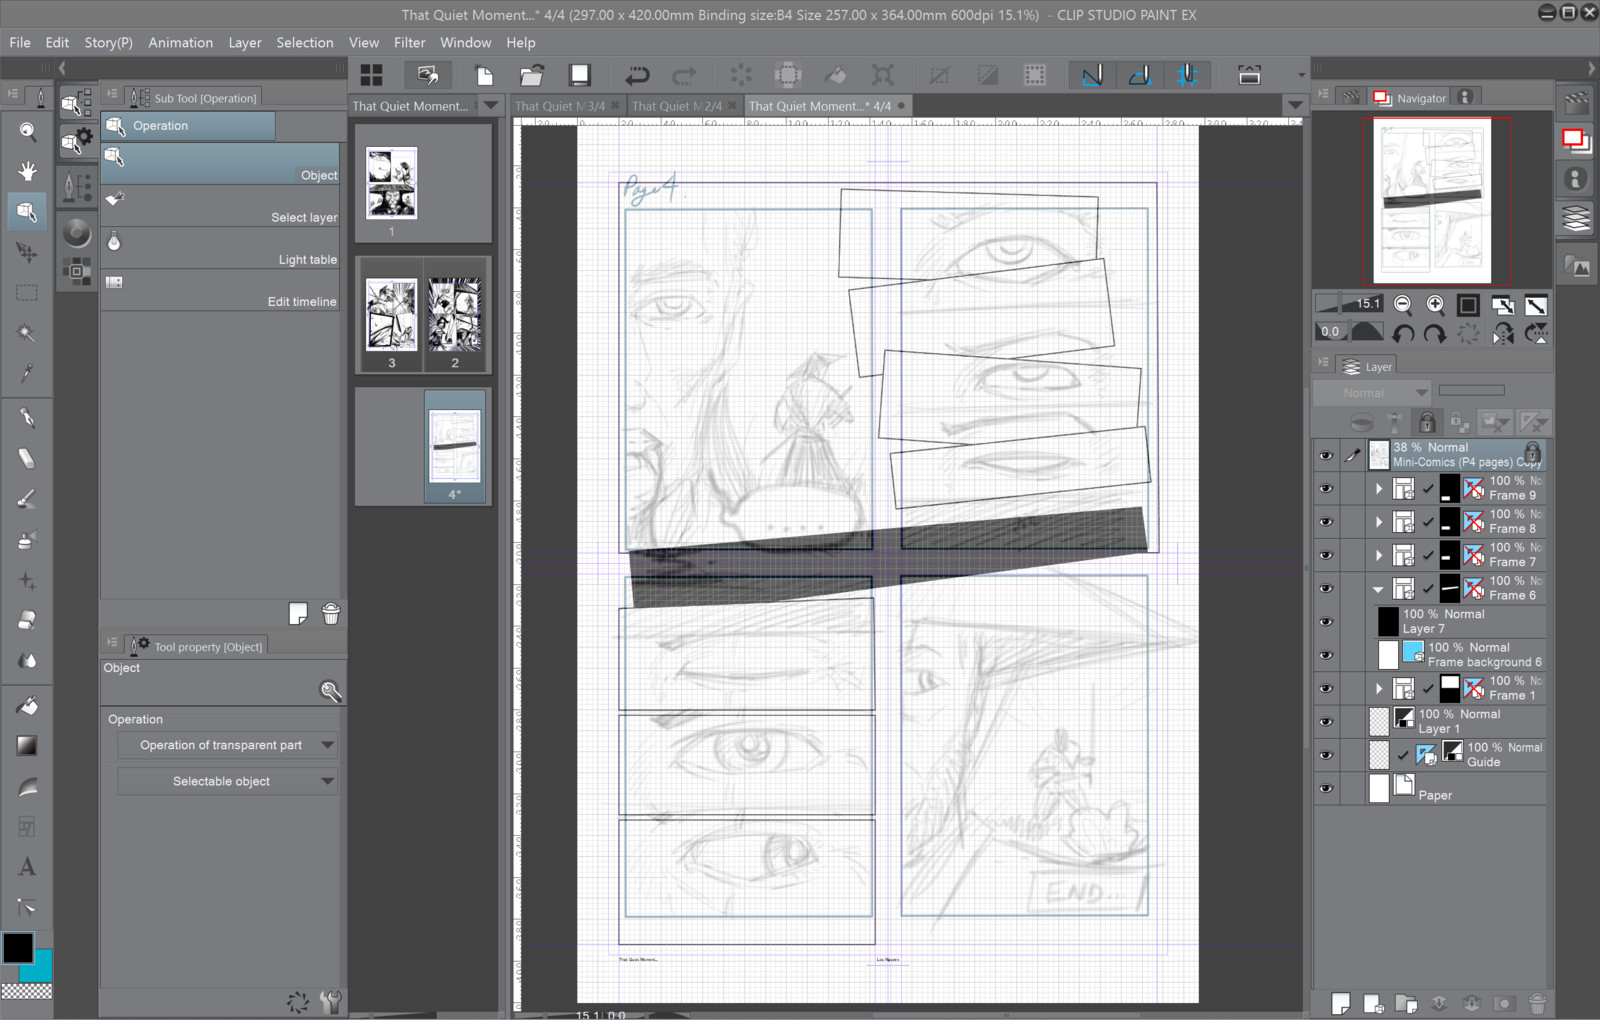 Importing Pencil layout into Clip Studio Paint and creating the frame for the comic.